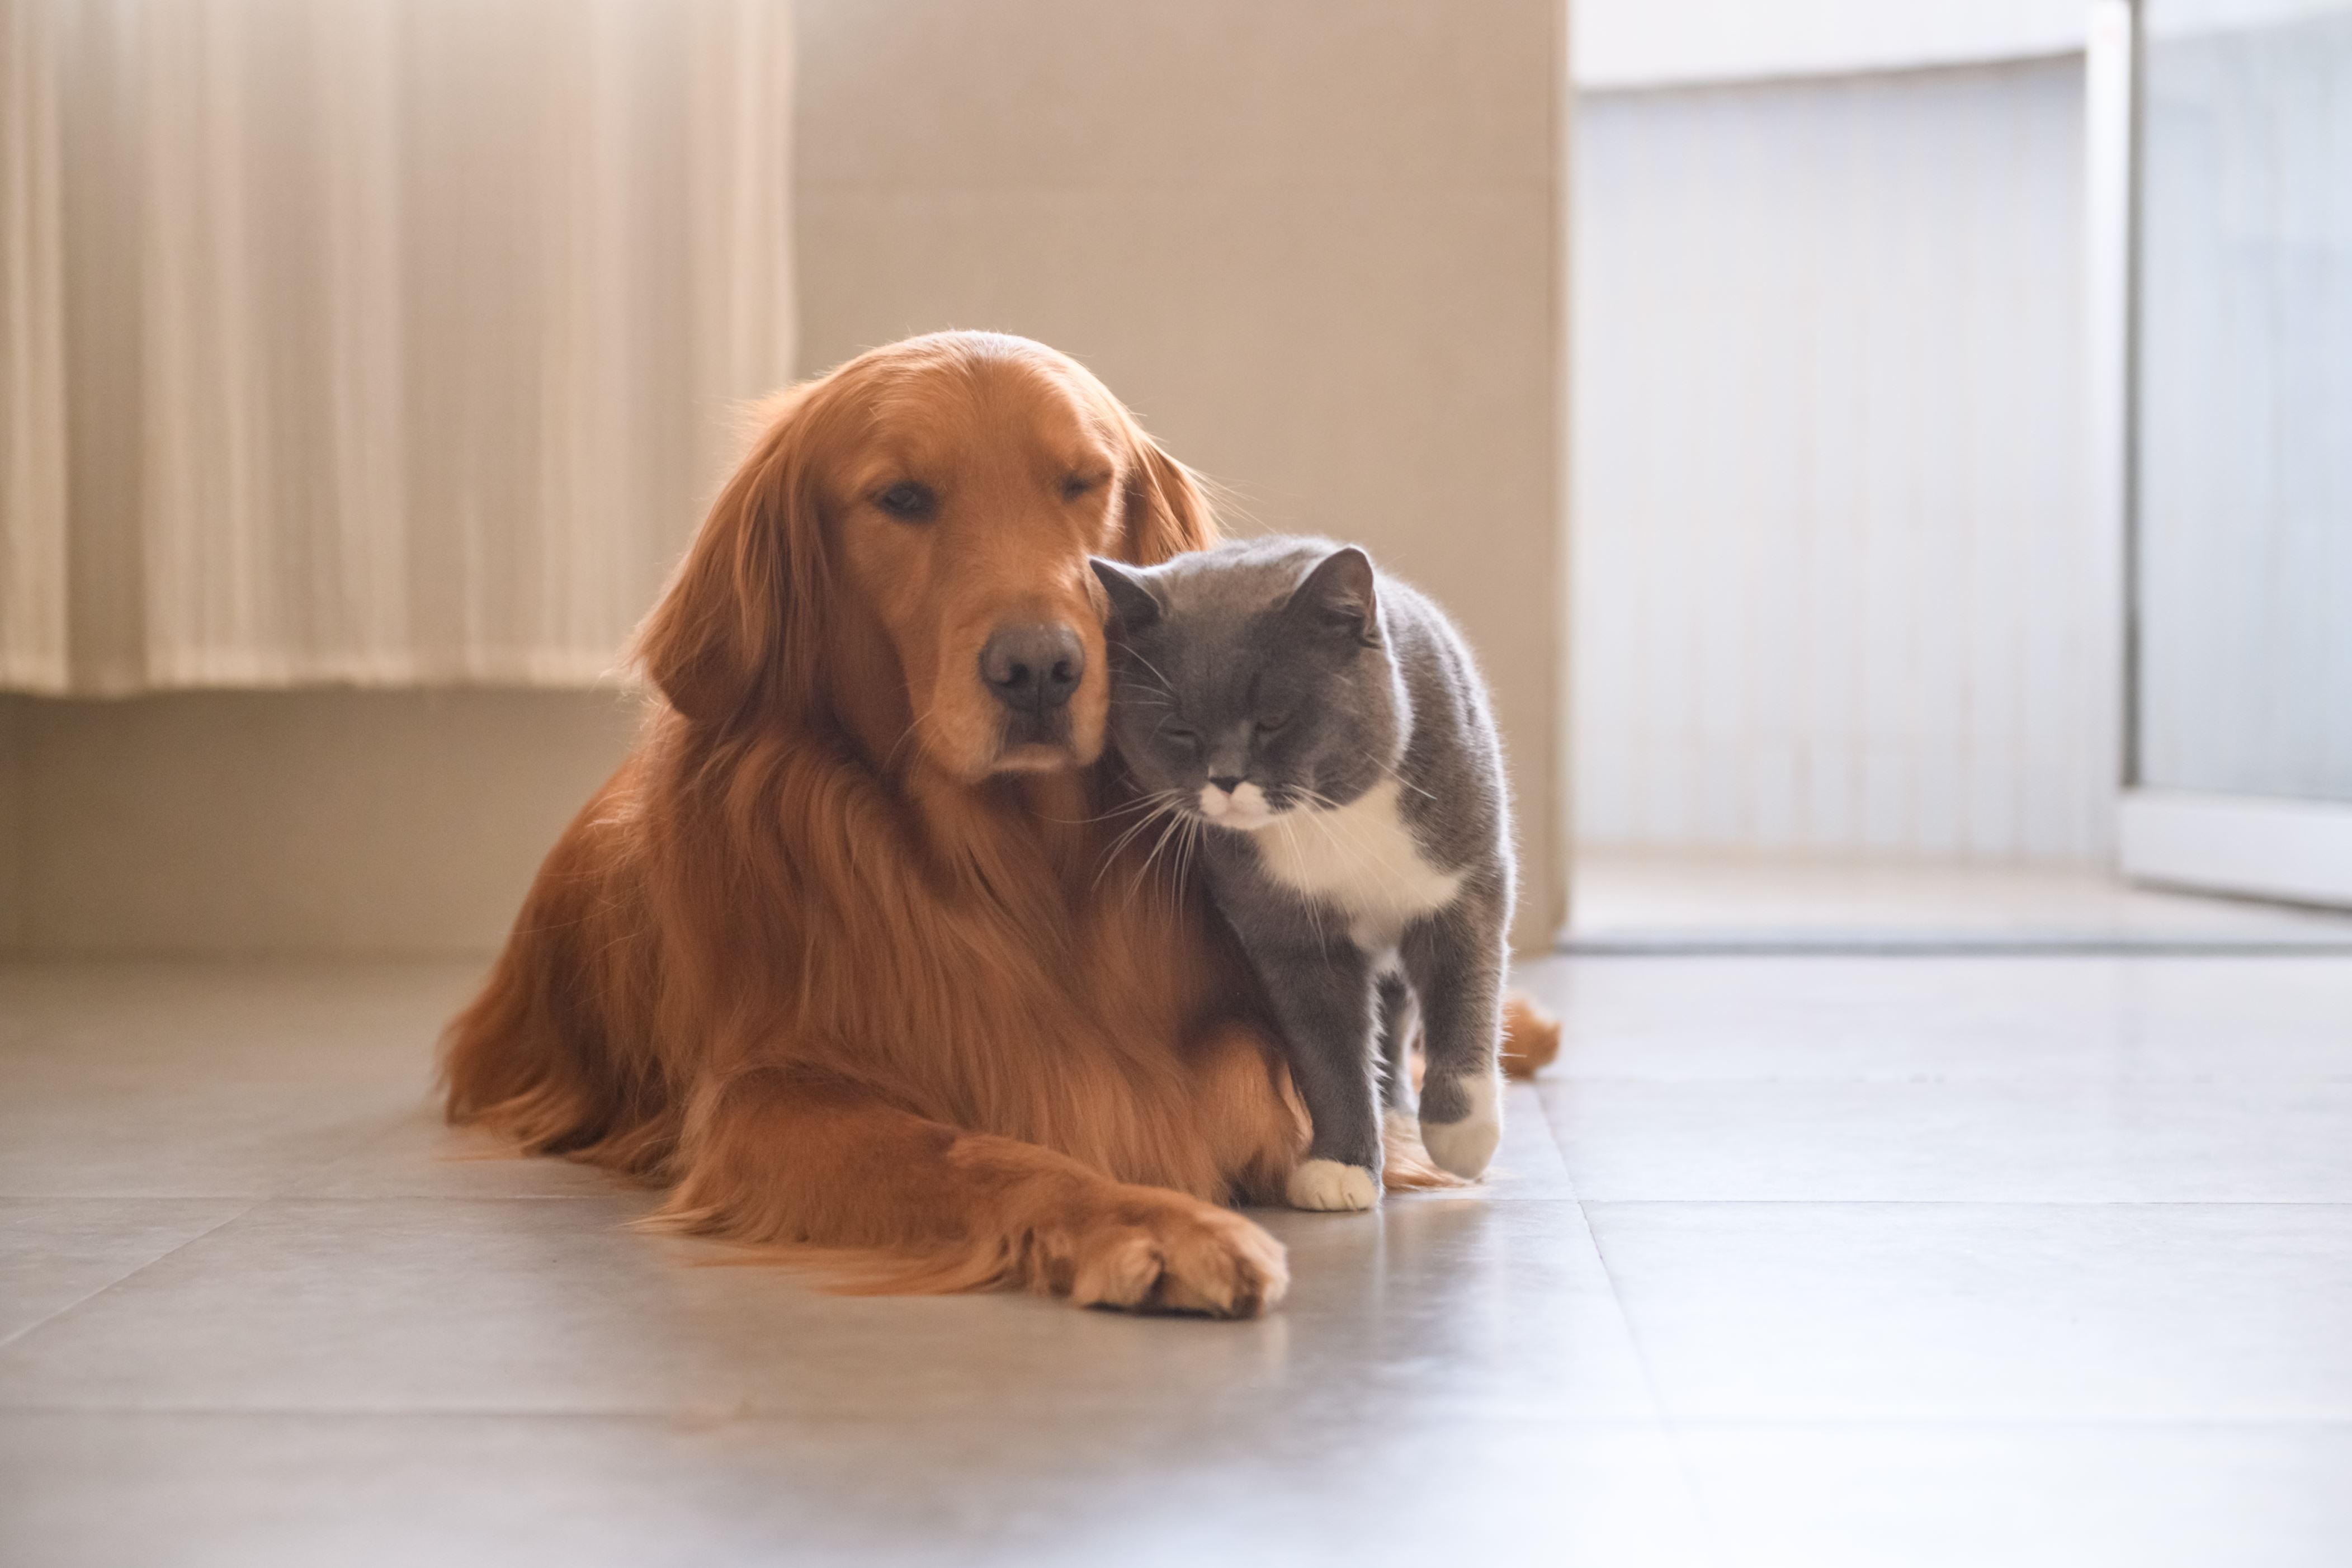 Therapy What Is An Emotional Support Animal And What Kind Of Animals Are Qualified Ajccom What Is An Emotional Support Animal And What Kind Of Animals Are